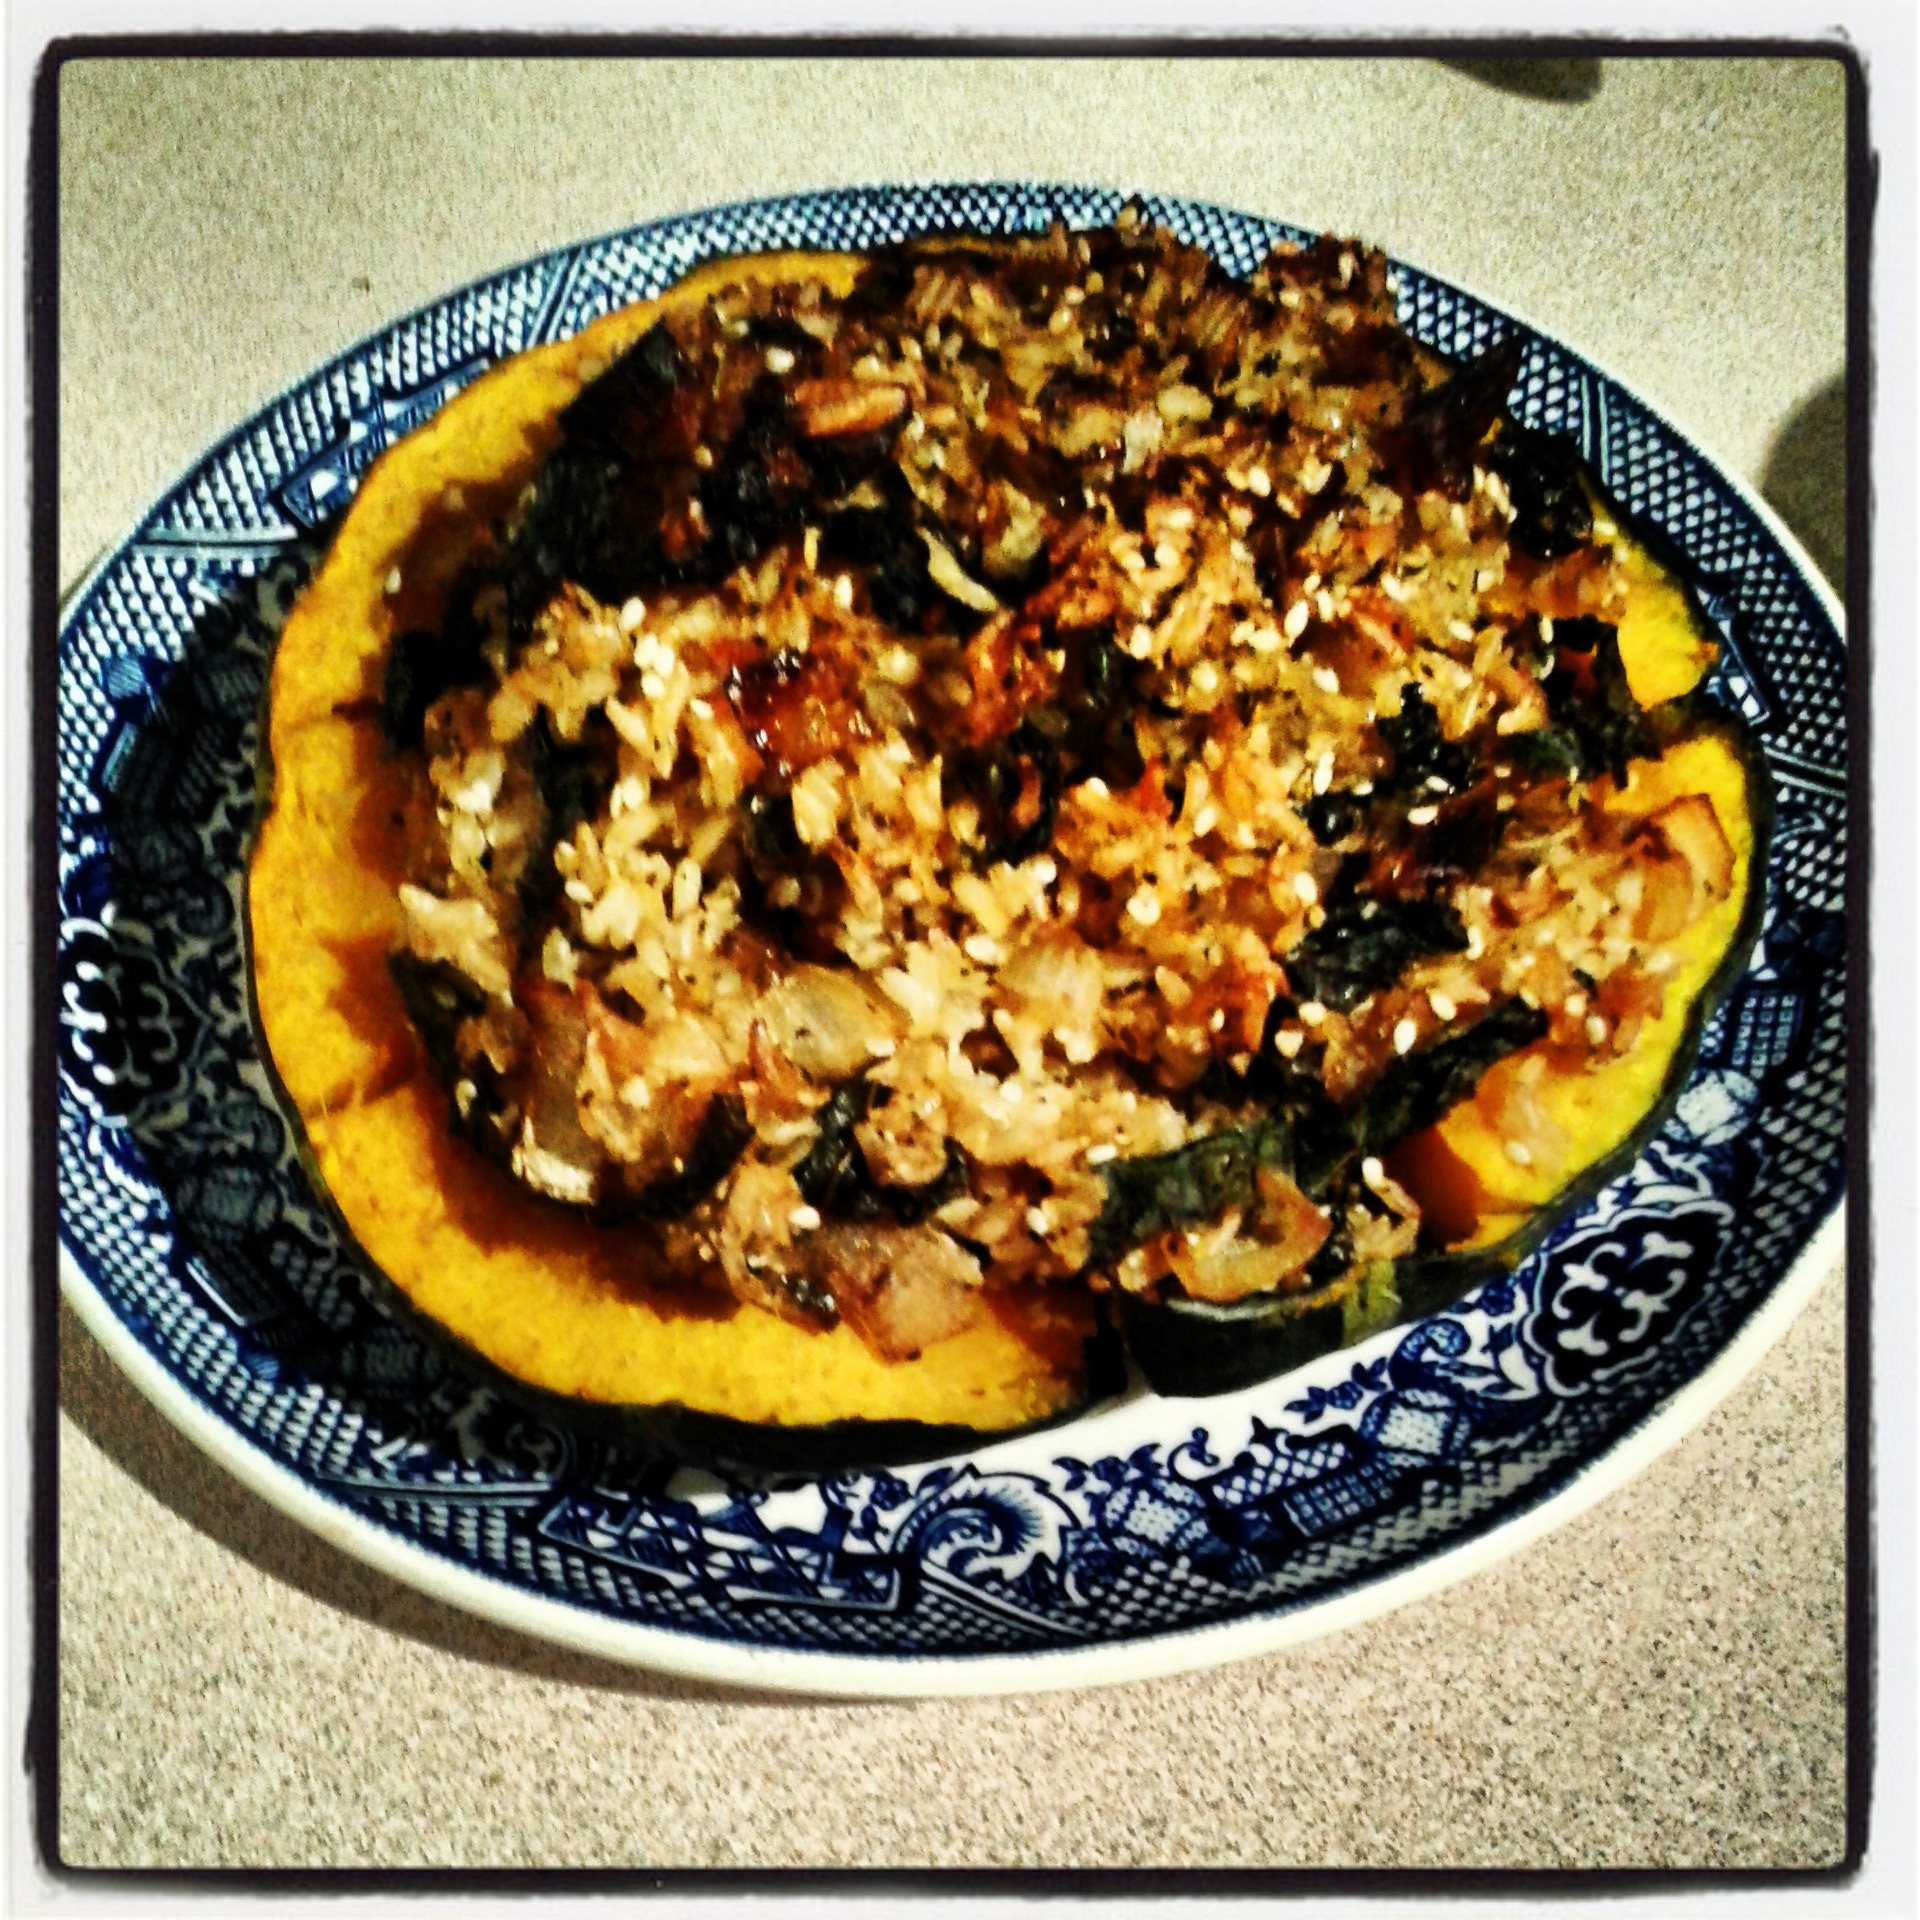 brown rice stuffed acorn squash